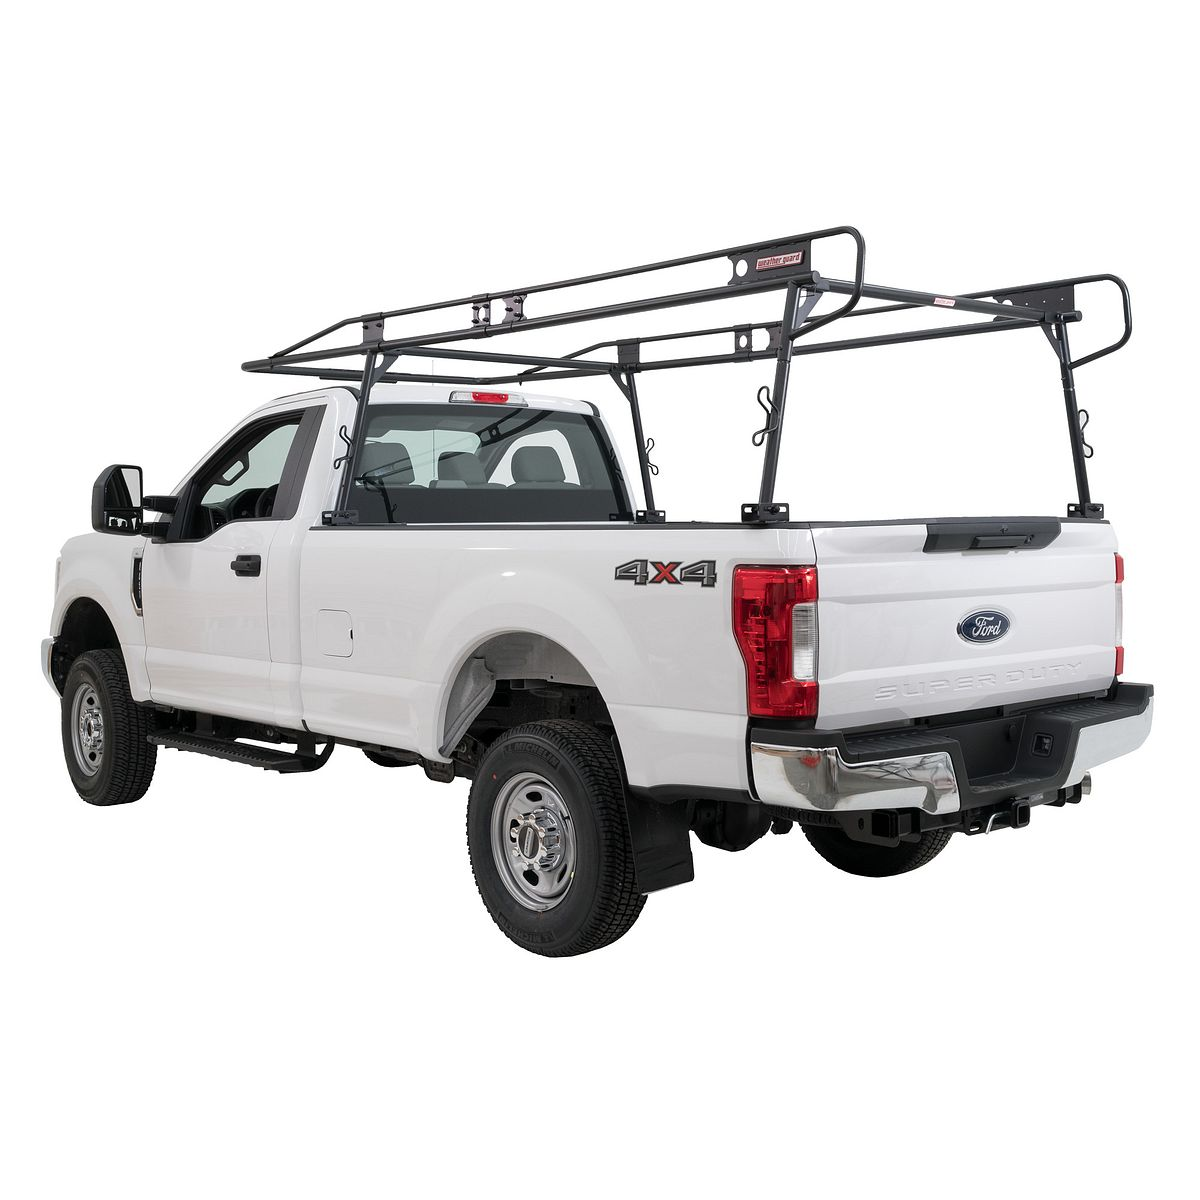 1275-52-02 Truck Racks - Weather Guard US